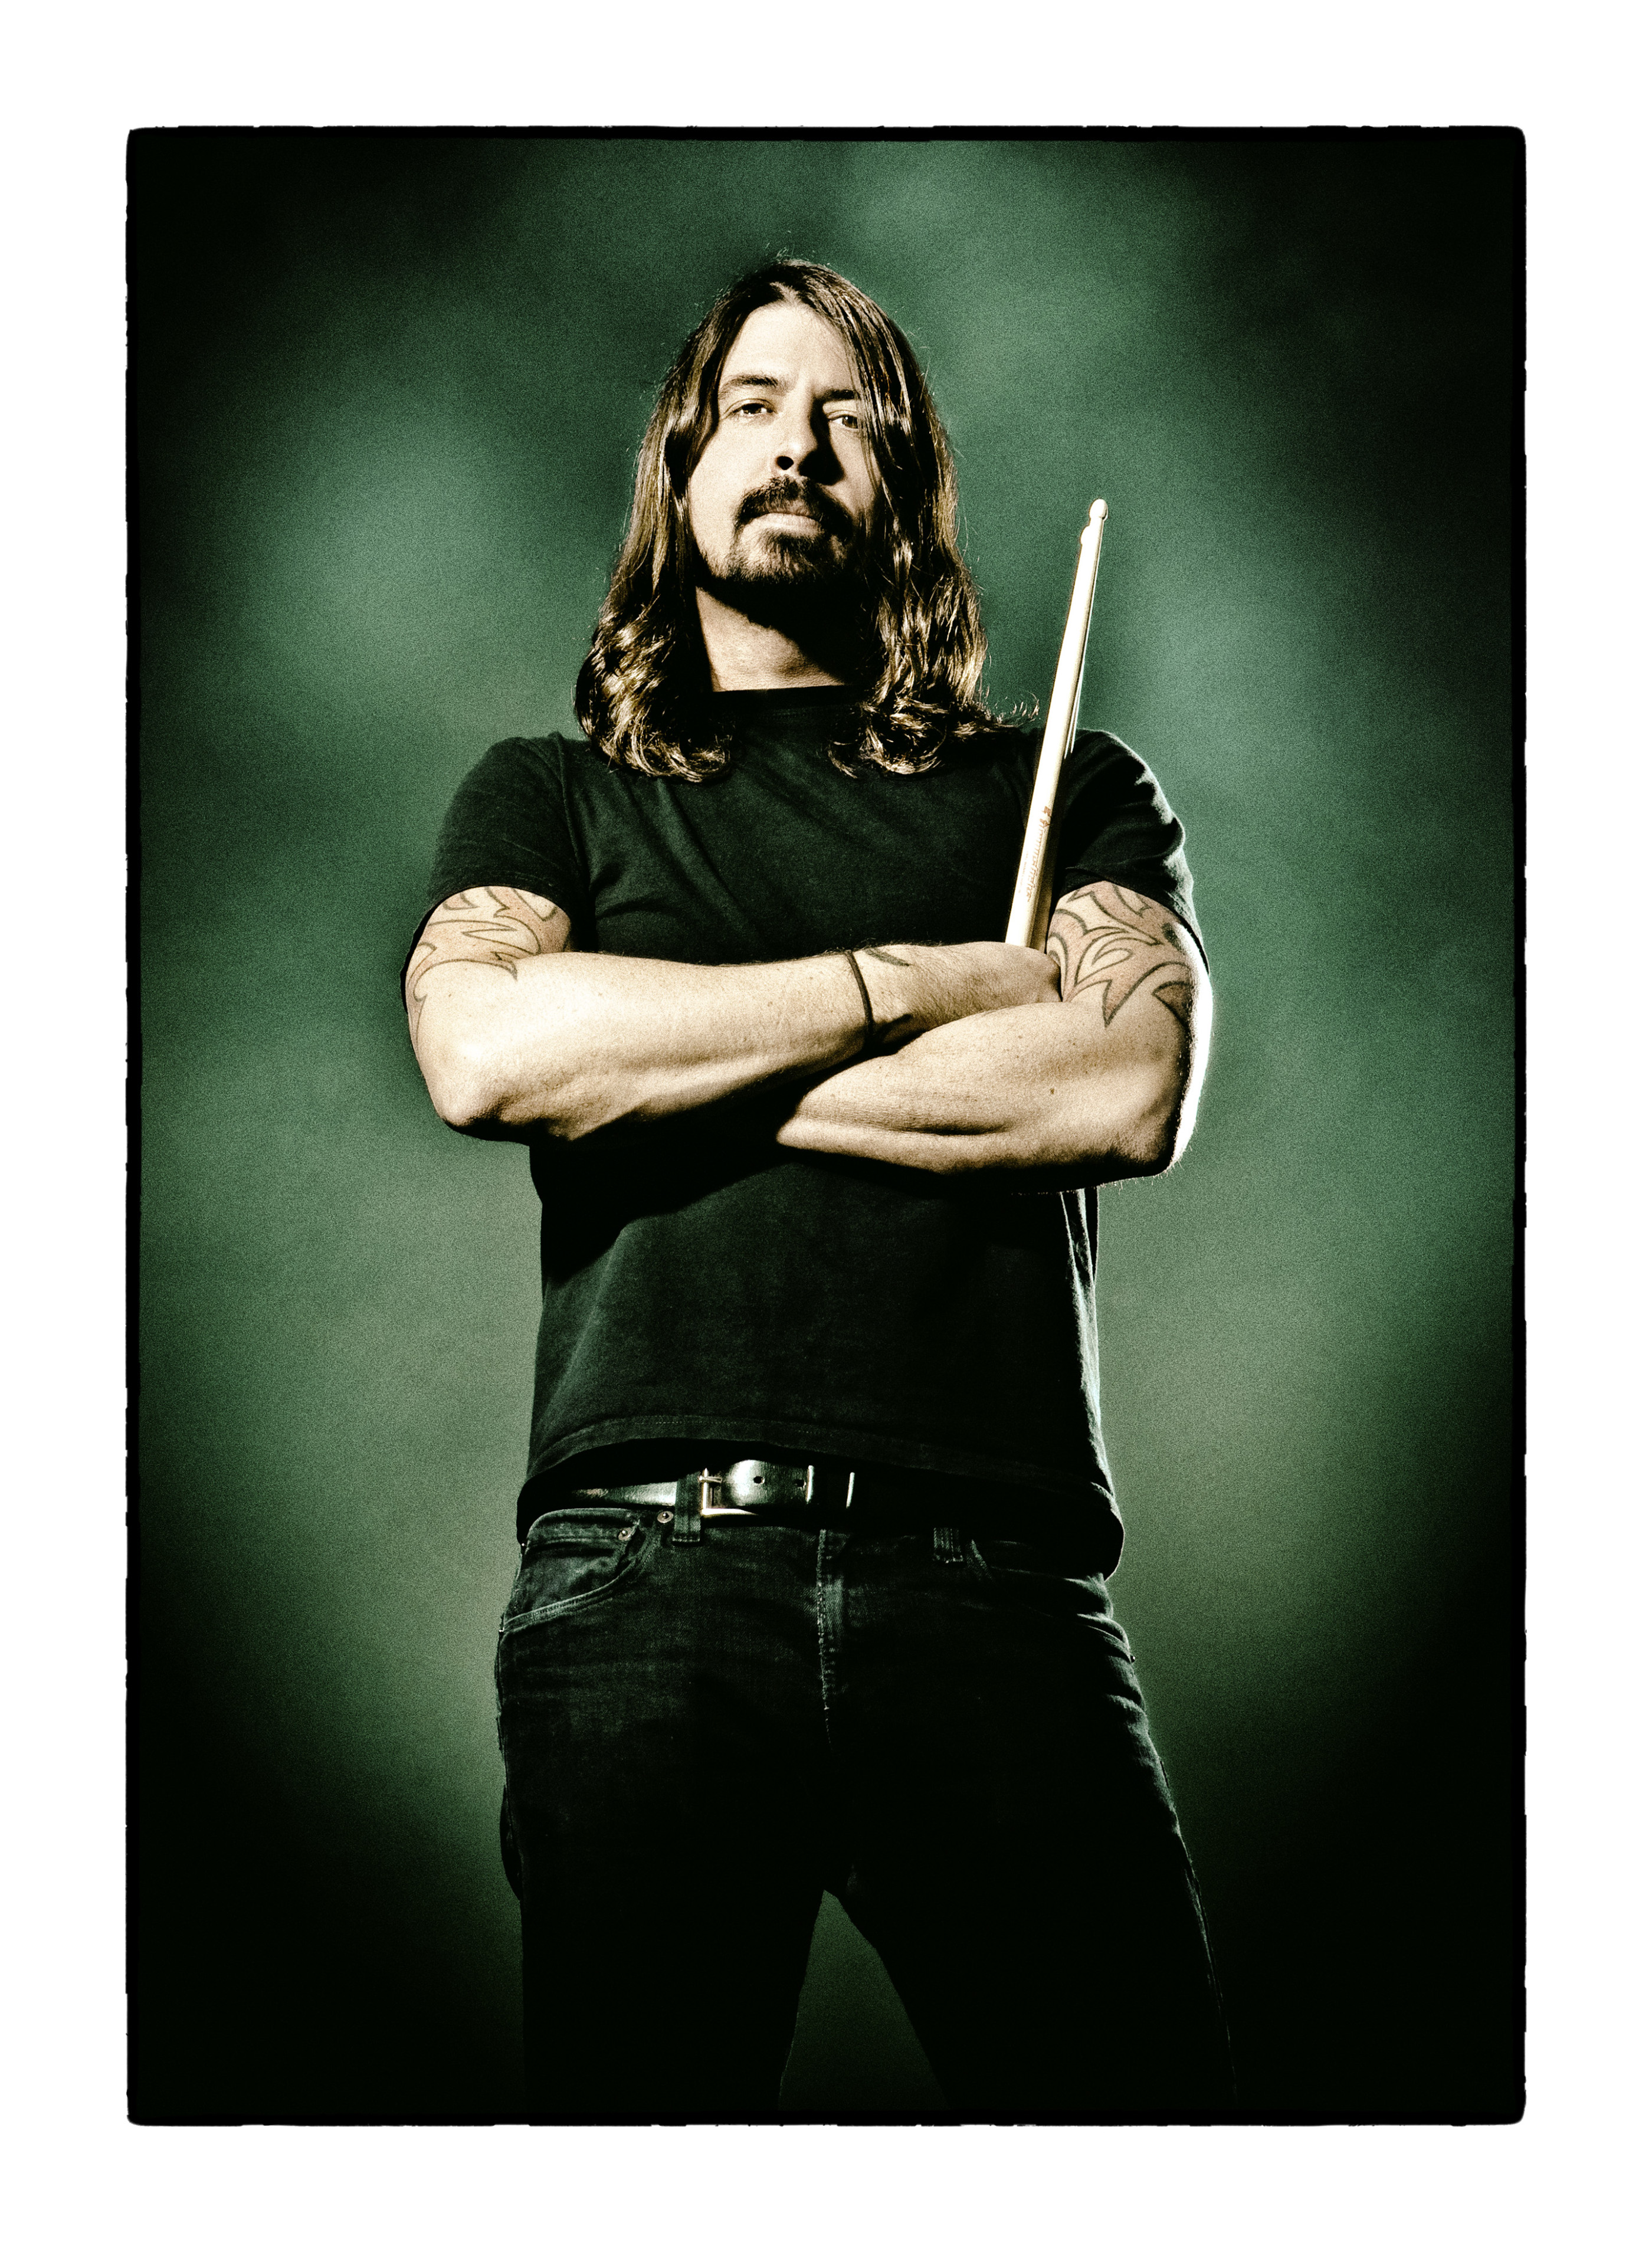 Dave Grohl by Ash Newell